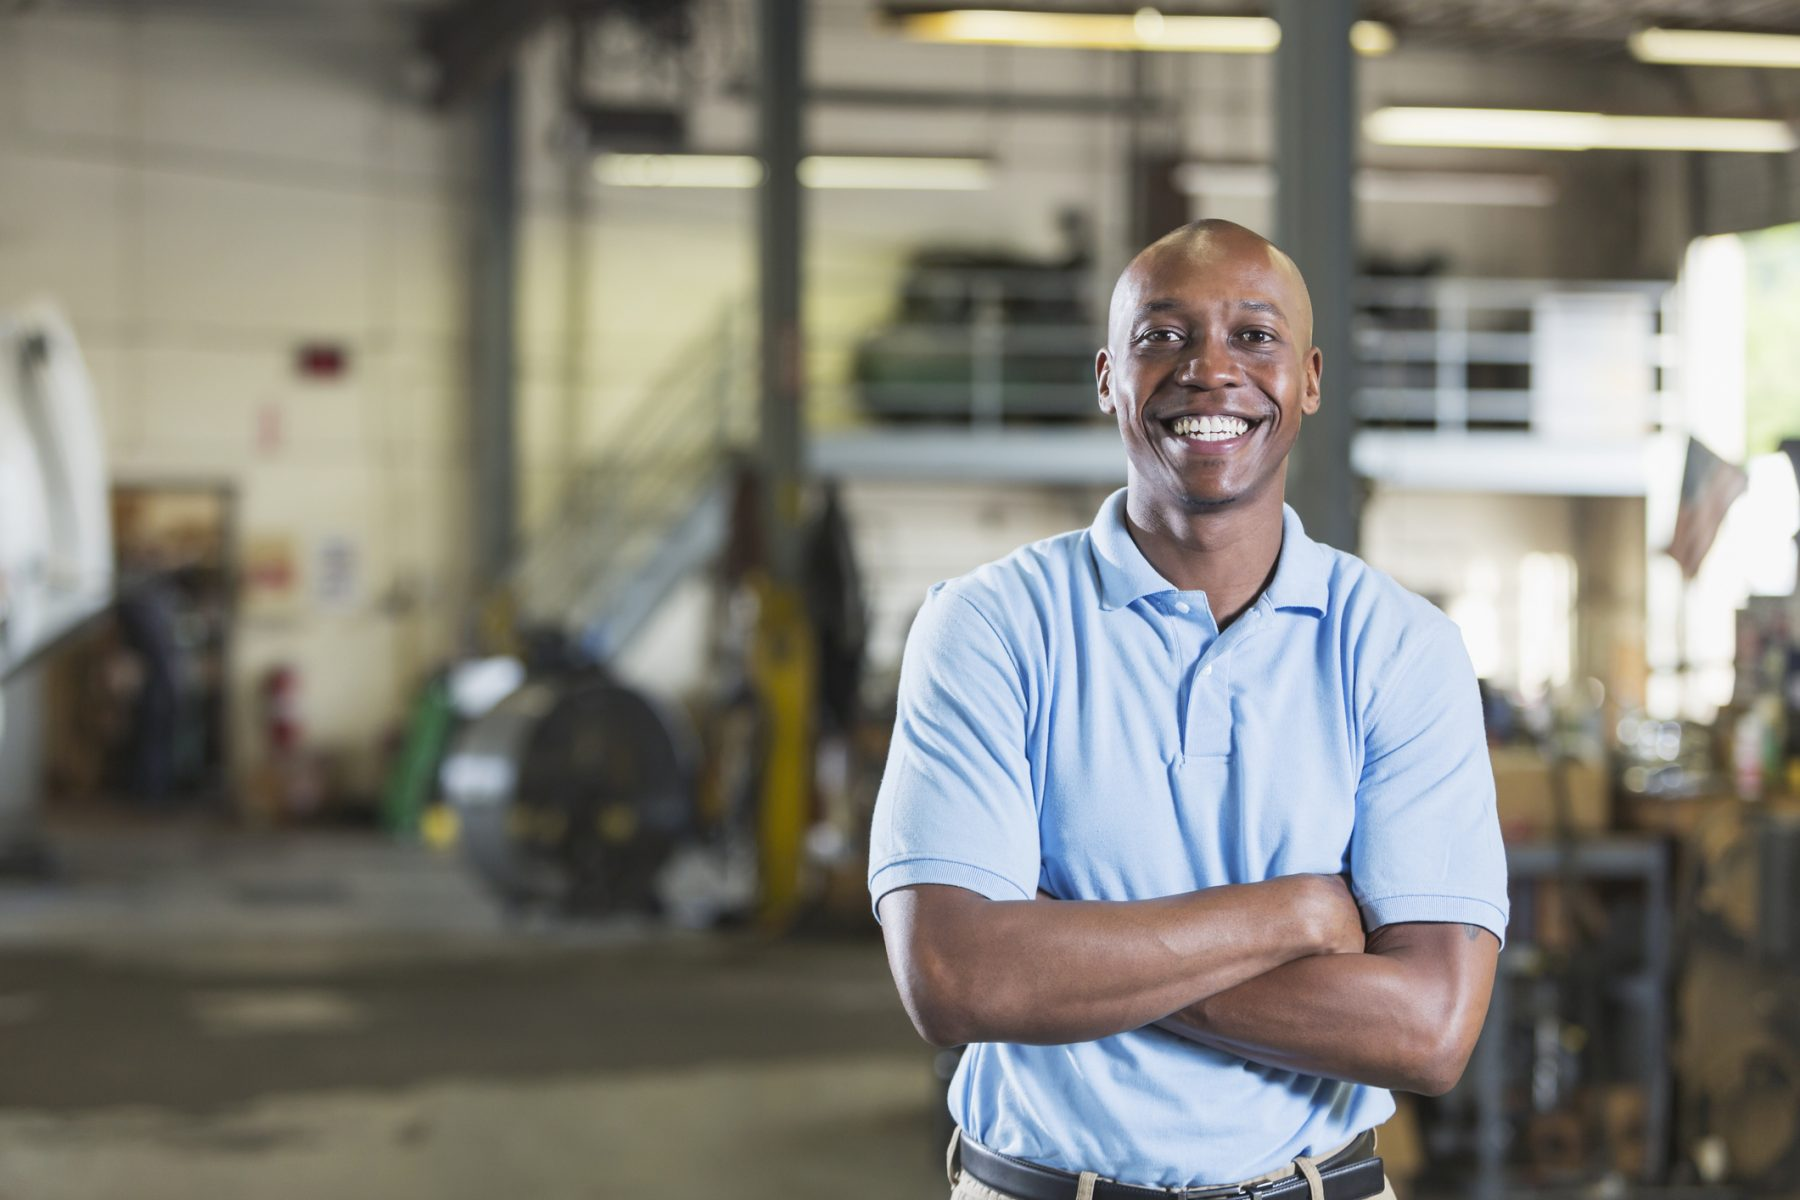 An African-American man standing with his arms crossed, smiling at the camera, in a vehicle repair shop.